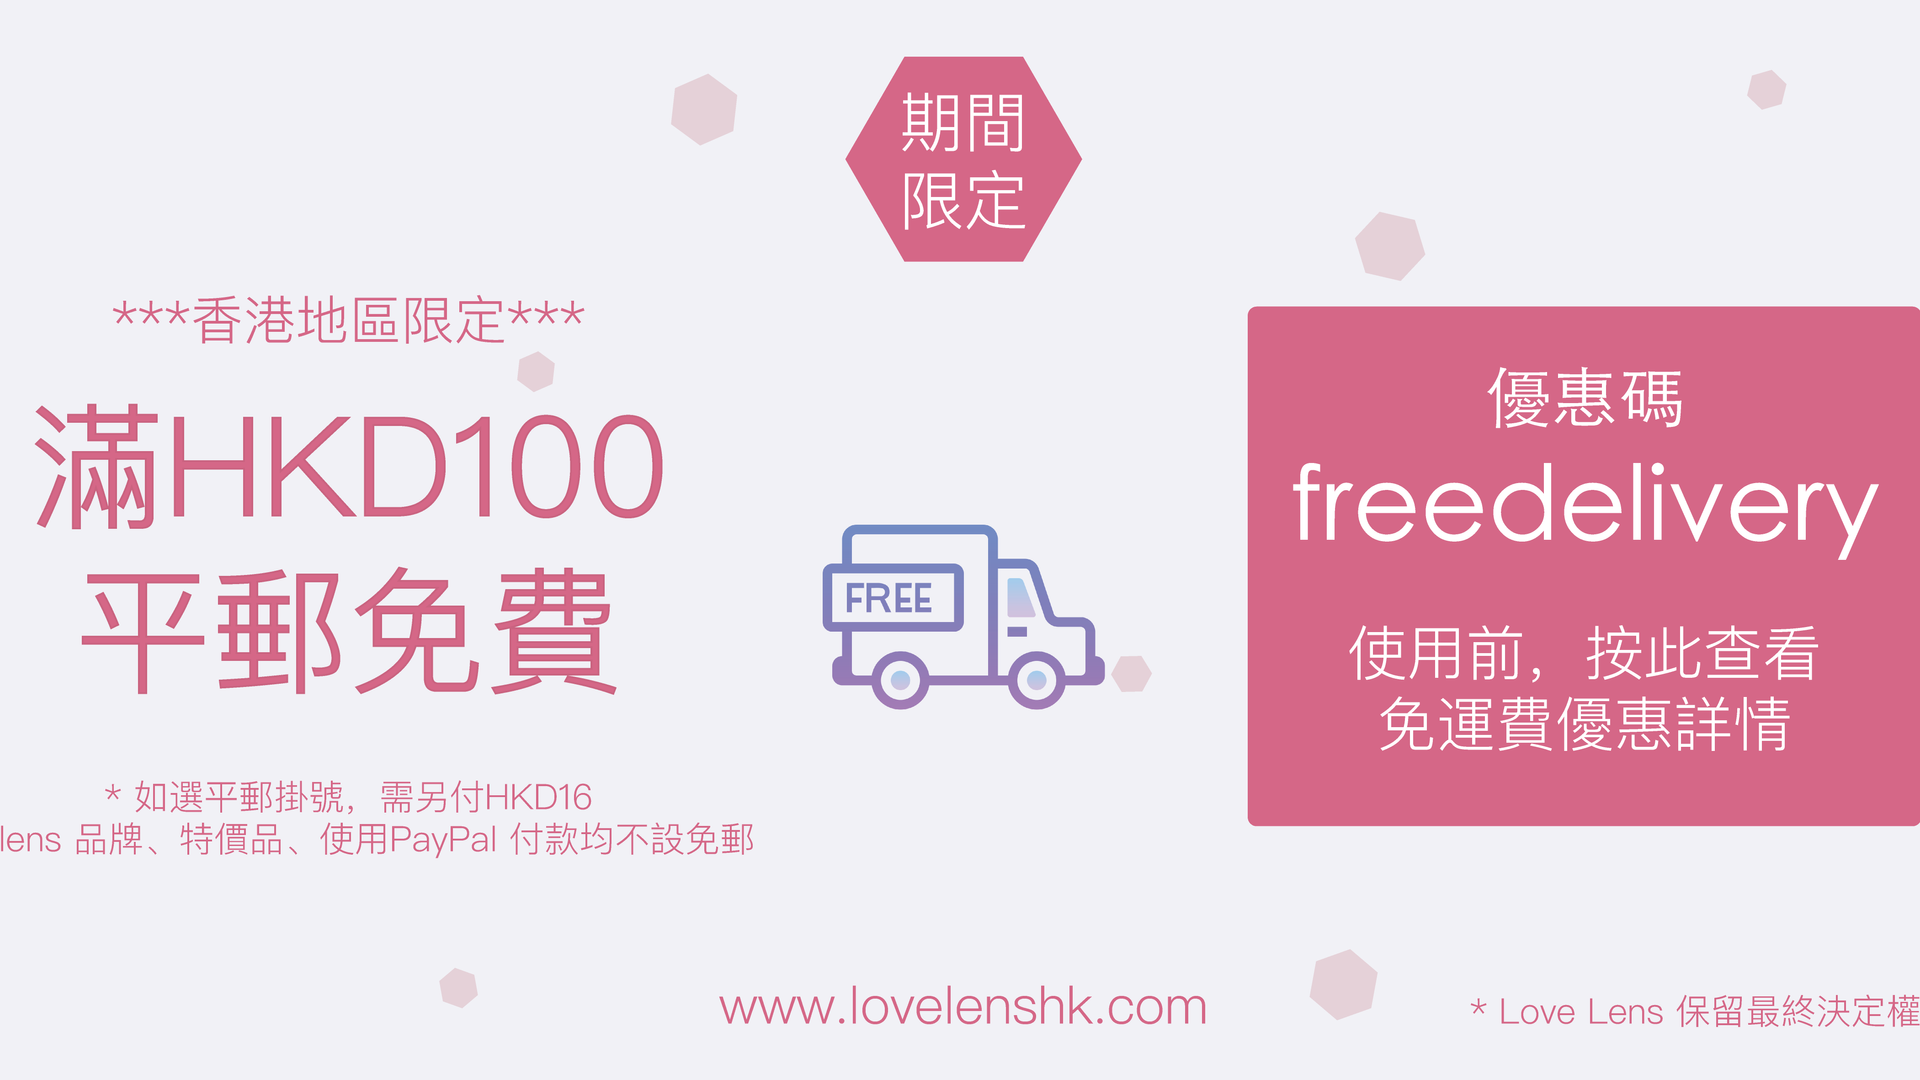 Love Lens Free Delivery